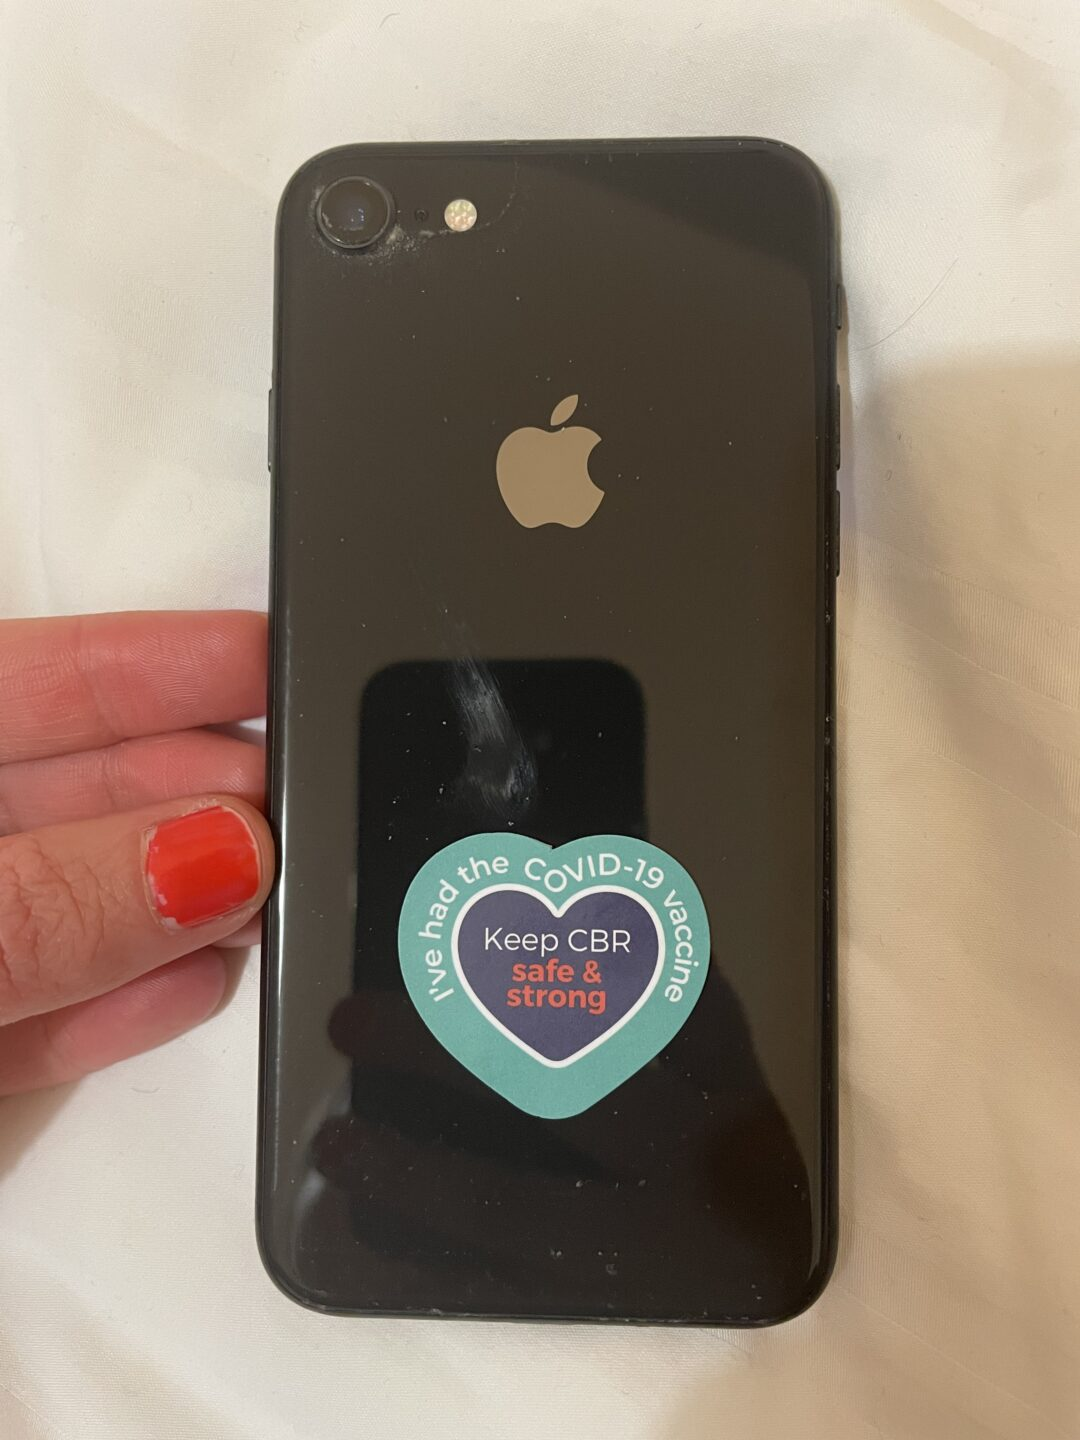 Black apple phone with a blue and purple heart sticker at the bottom, reading 'I've had the COVID-19 vaccine / Keep CBR safe & strong'